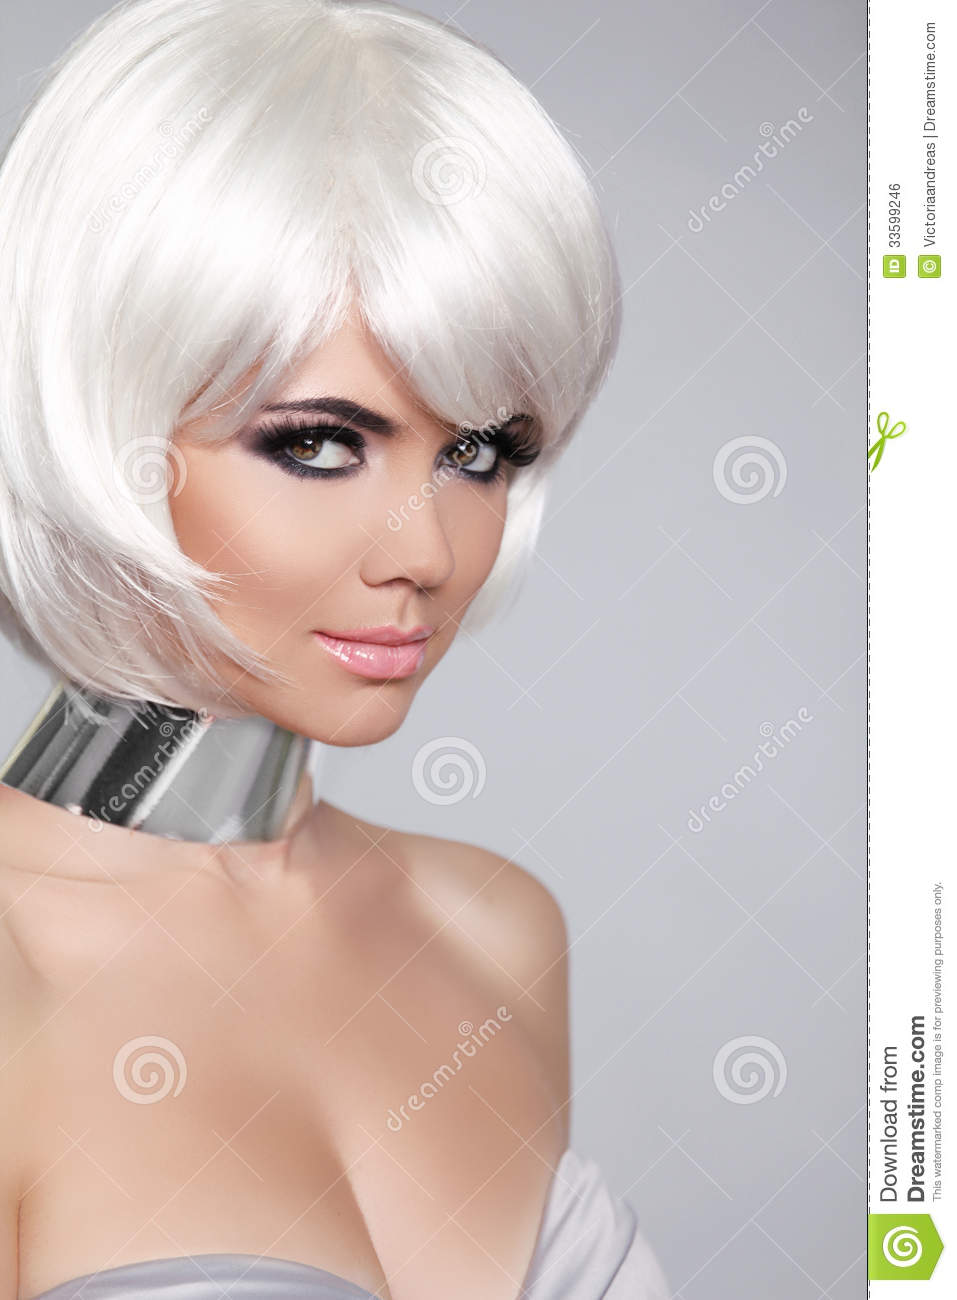 Fashion Beauty Portrait Woman White Short Hair Beautiful Girl Royalty Free Stock Image